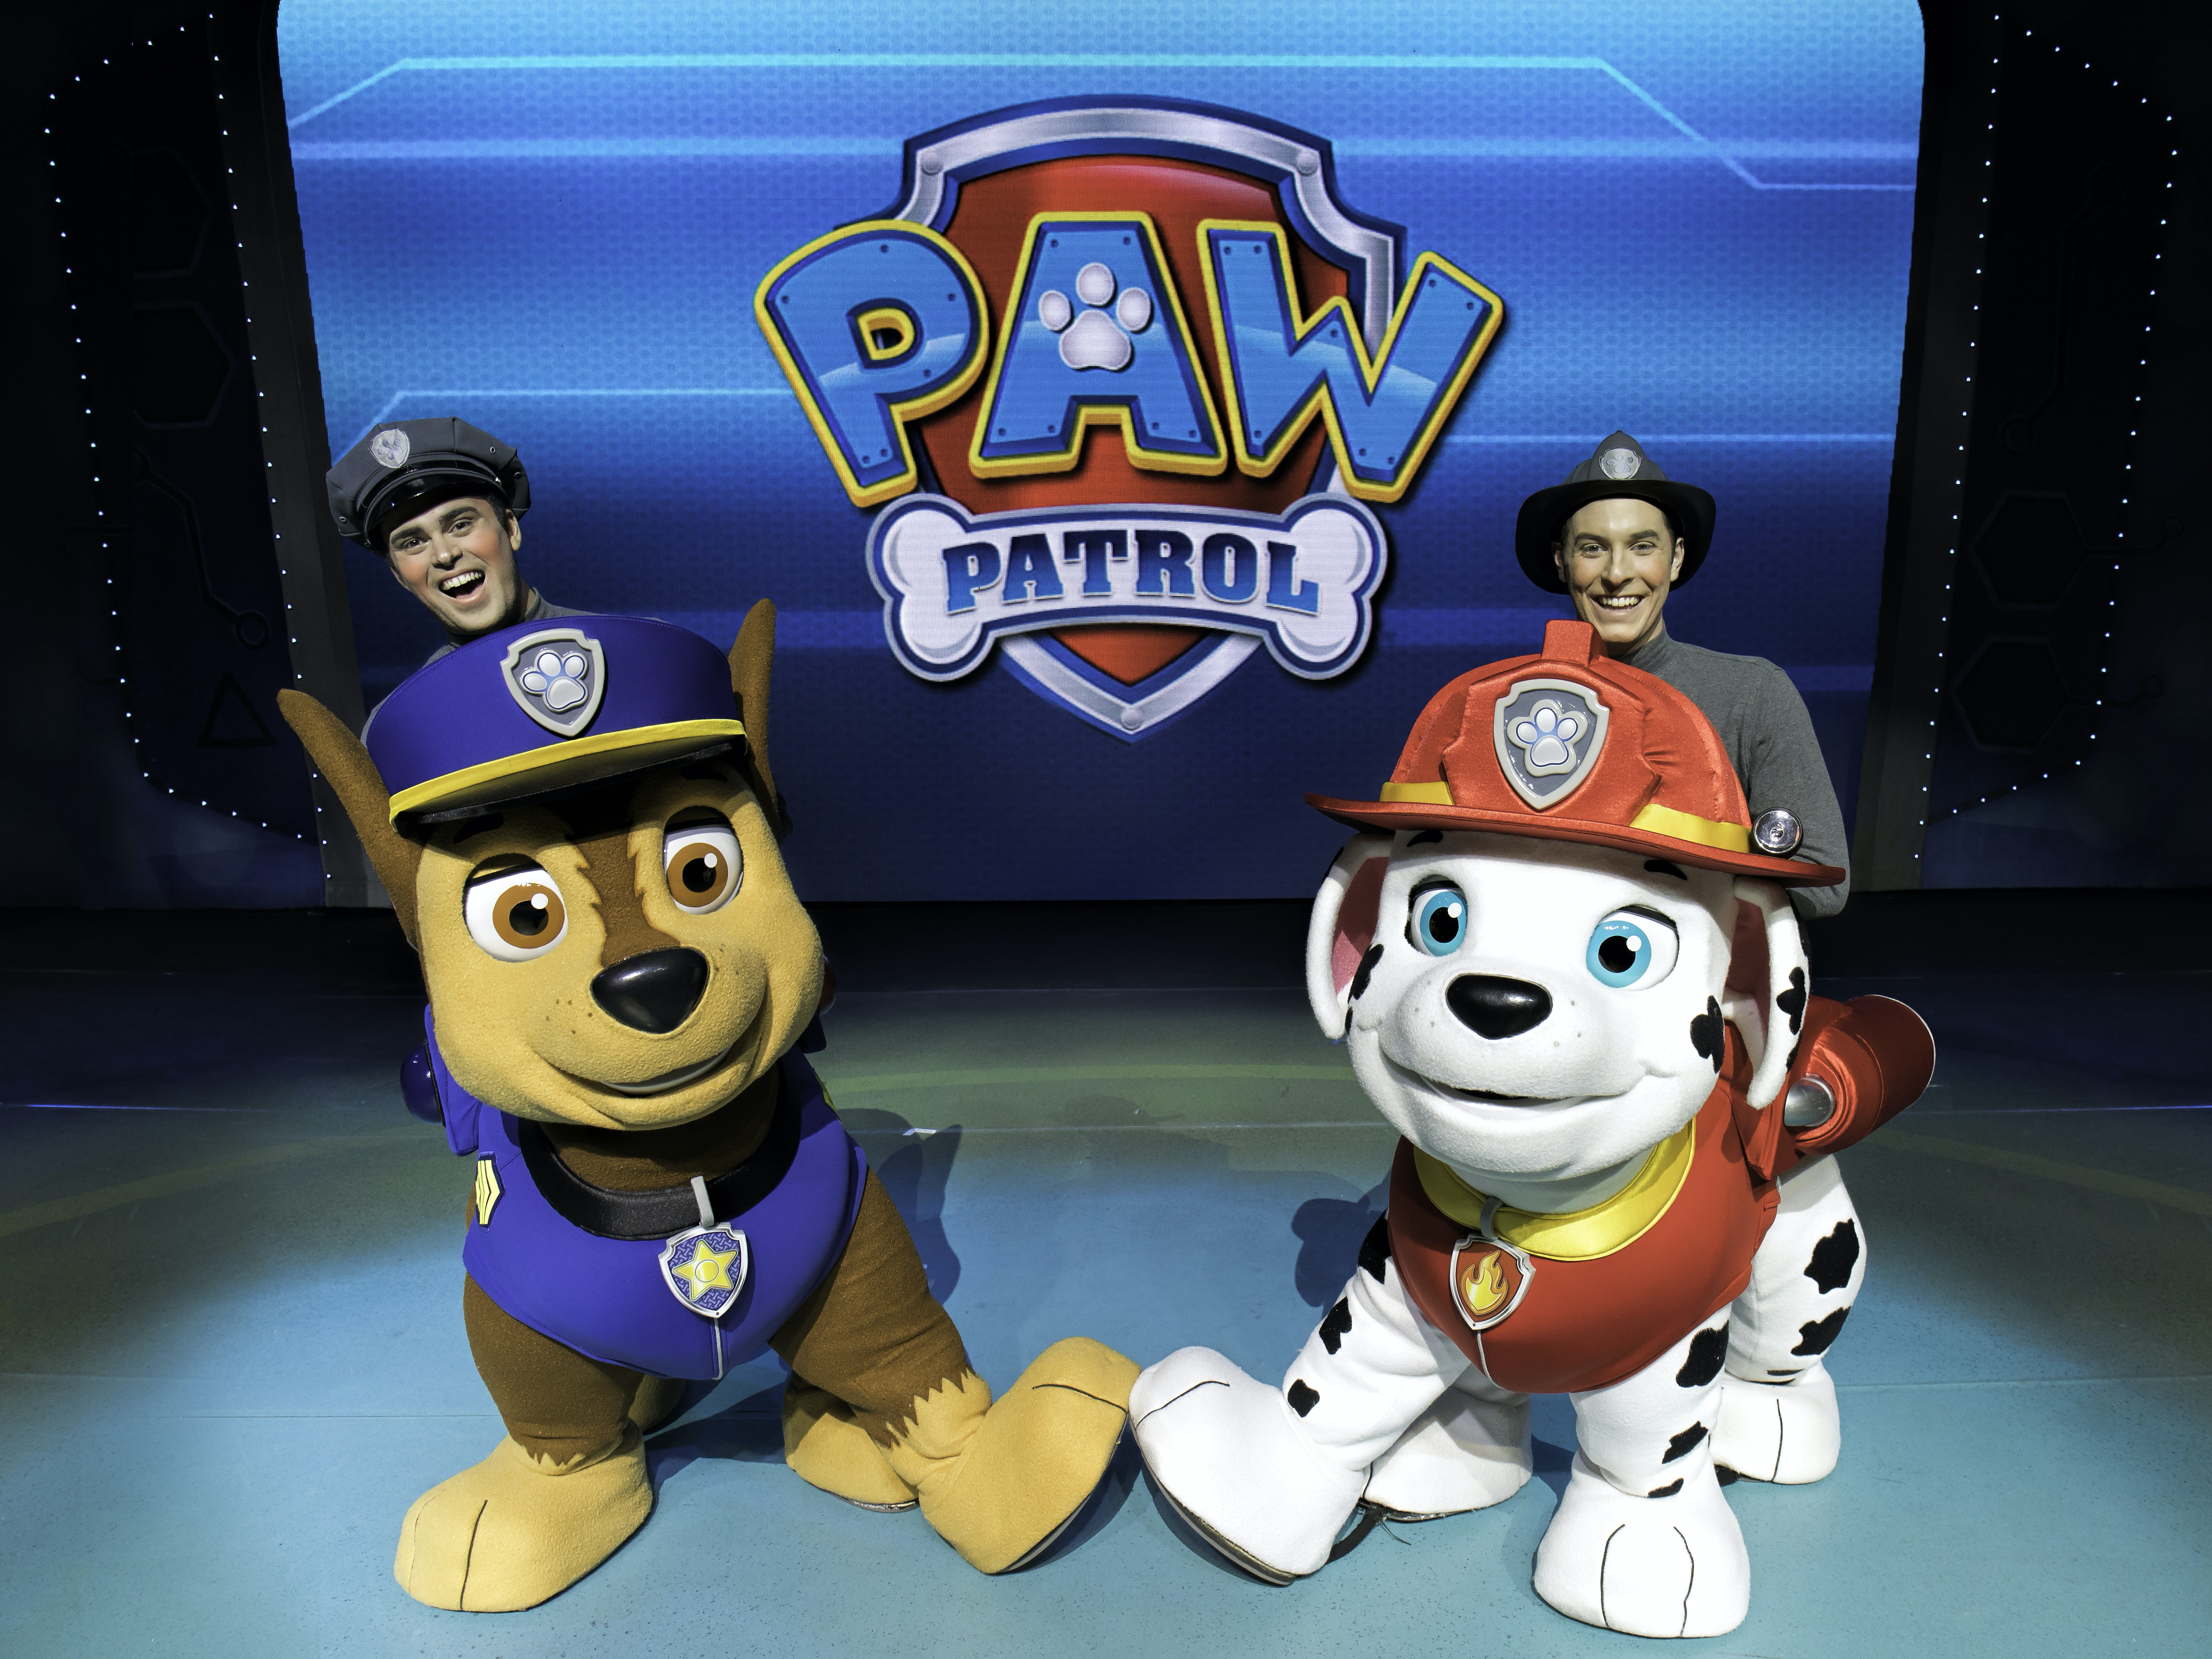 PAW Patrol Live! Race to the Rescue sweepstakes